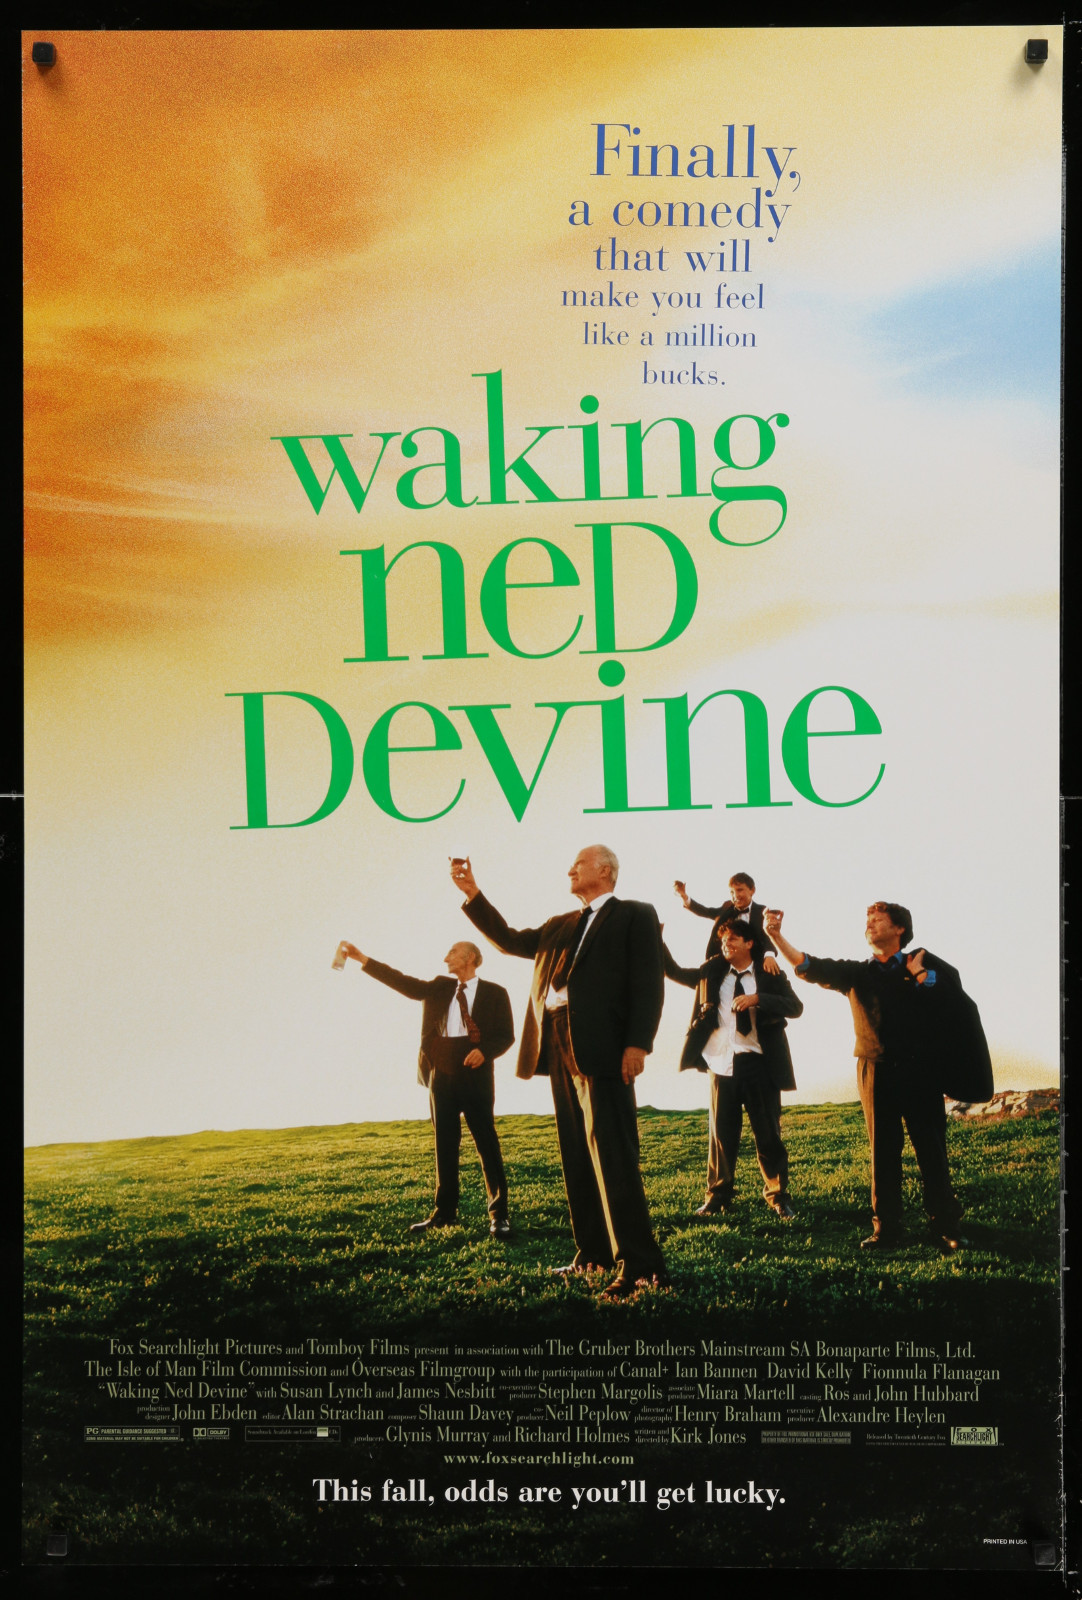 Waking Ned Devine 2A391 A Part Of A Lot 24 Unfolded Double-Sided 27X40 One-Sheets '90S-00S Great Movie Images!